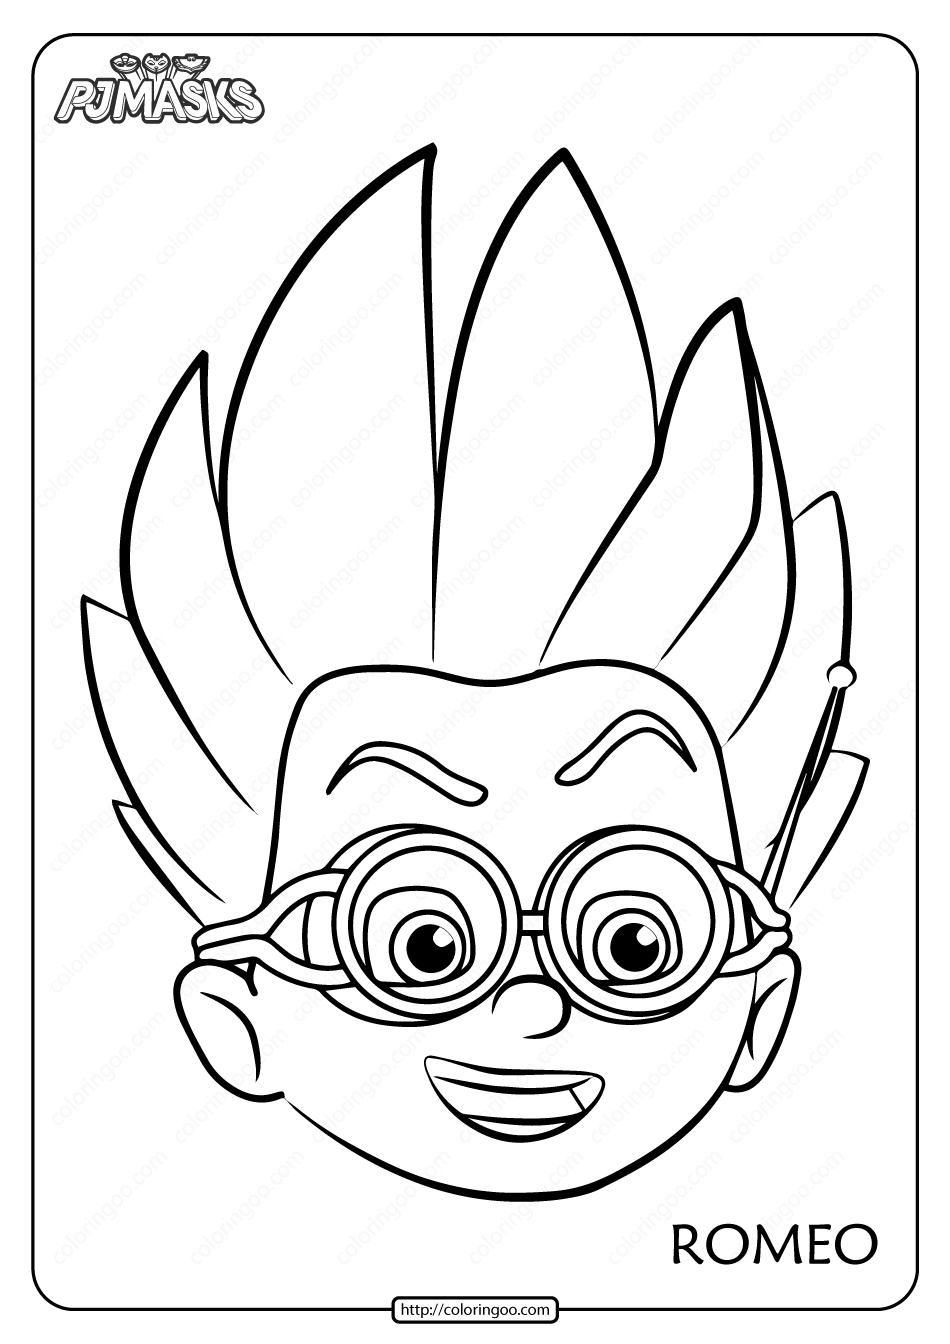 Free Printable PJ Masks Romeo Mask Coloring Page